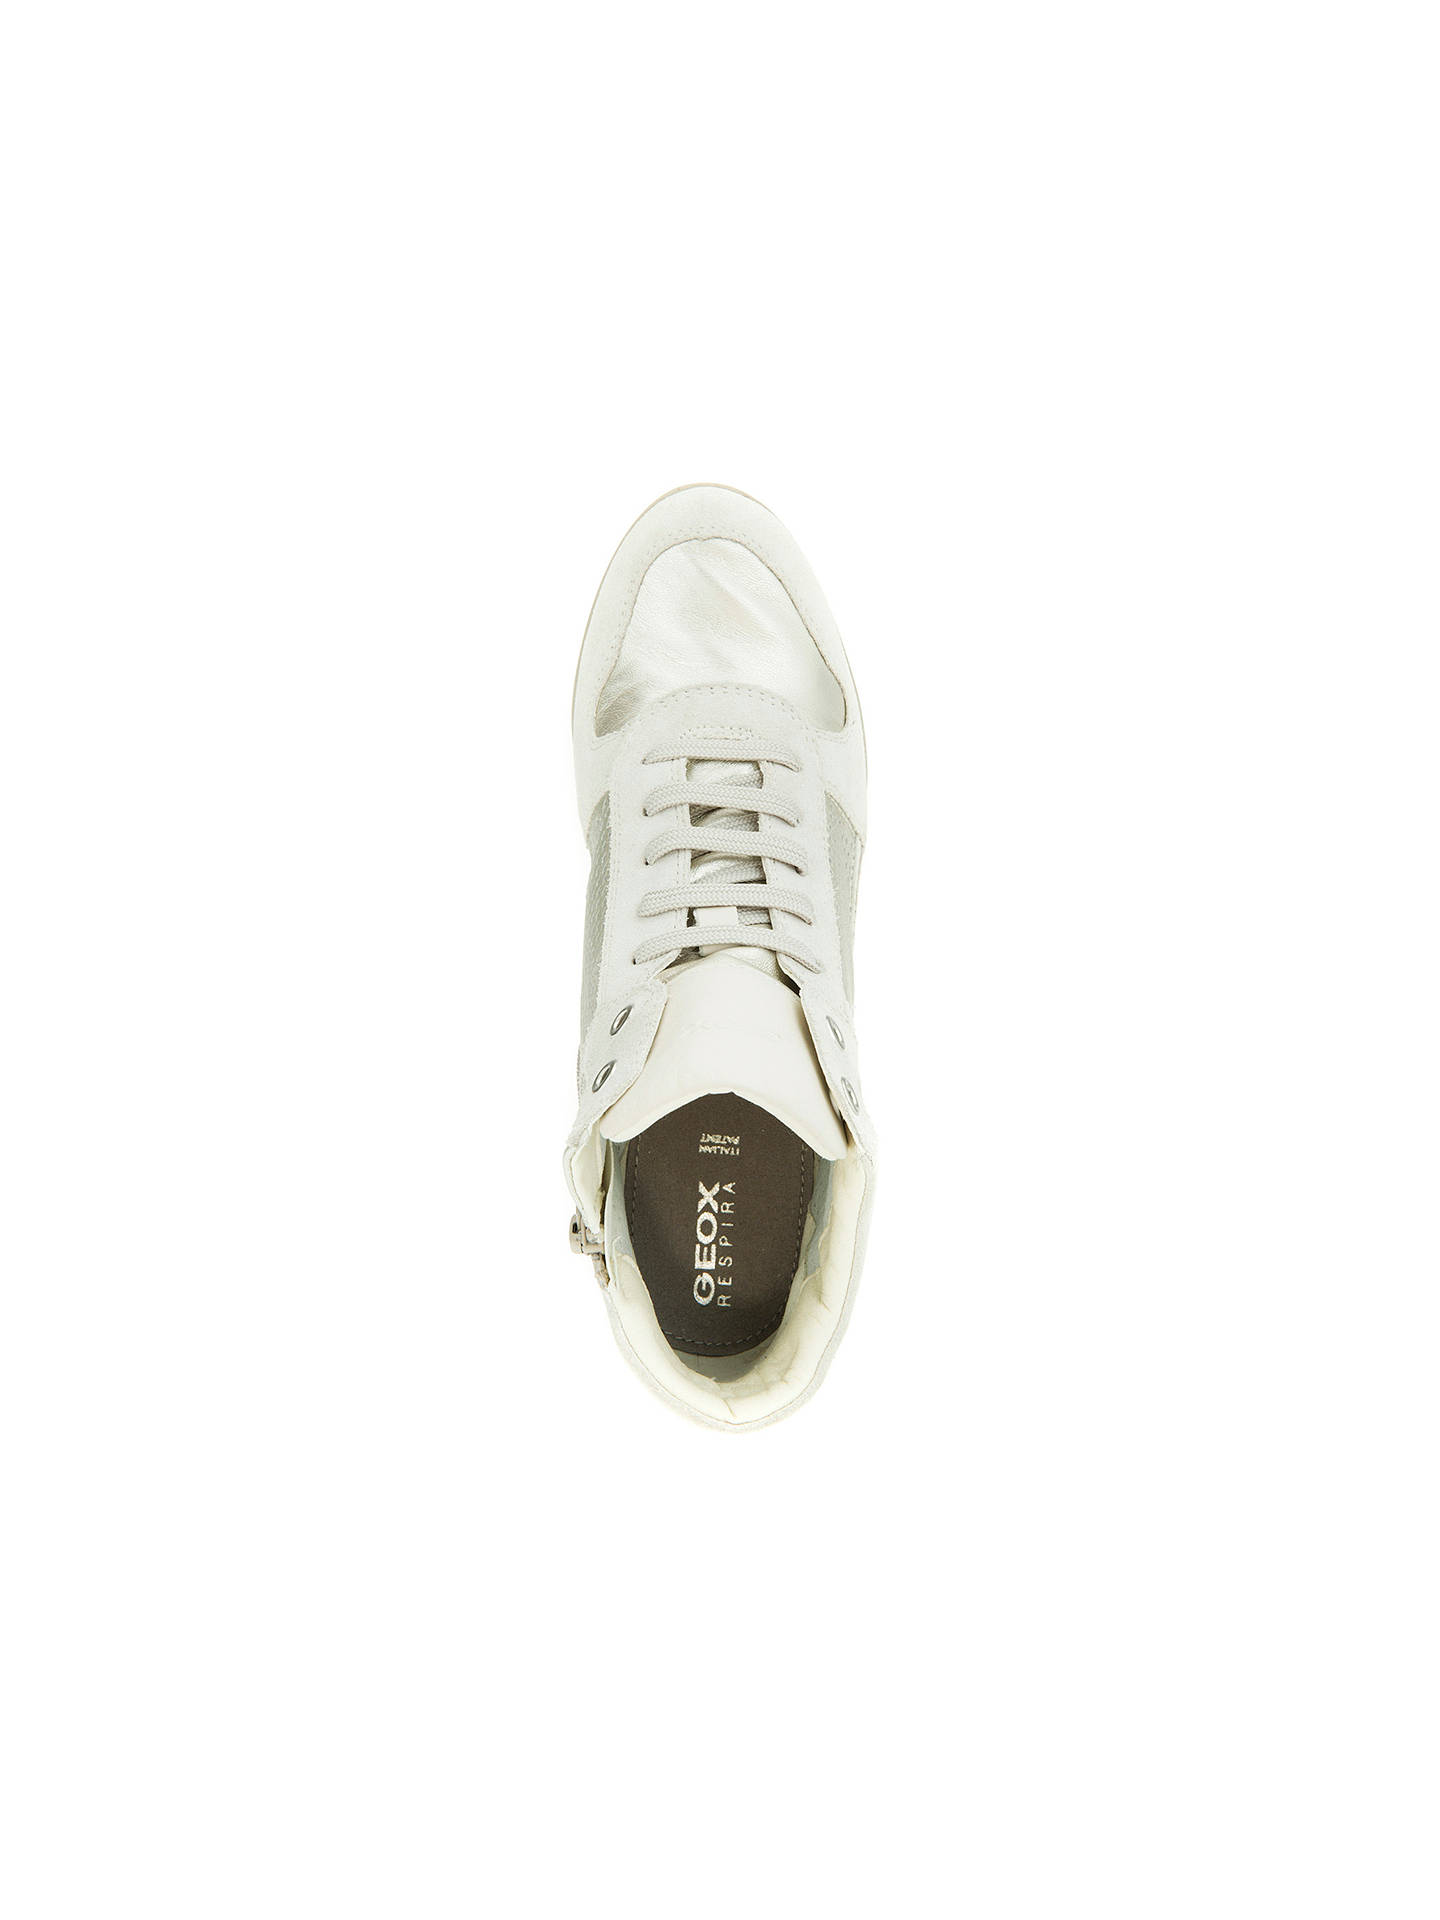 9b827c5c09 ... Buy Geox Illusion Hidden Wedge Trainers, Off White, 3 Online at  johnlewis.com